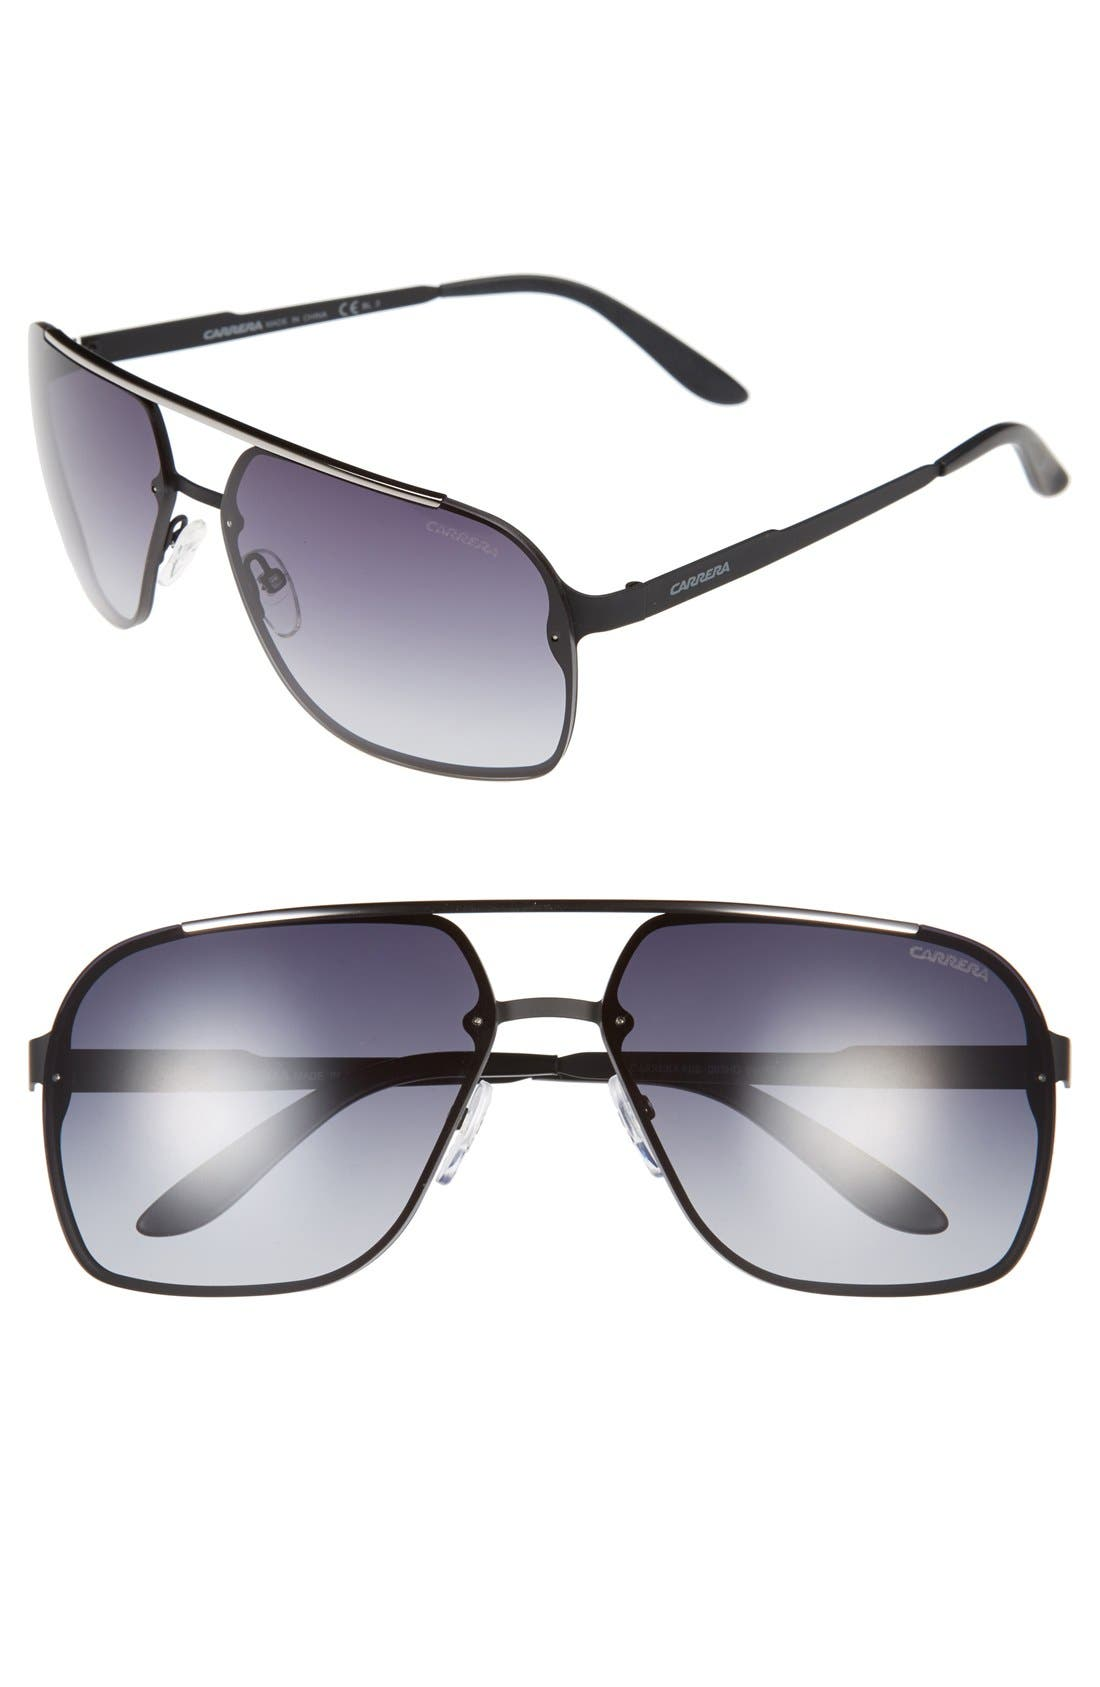 Carrera Eyewear Navigator Sunglasses - Matte Black/ Grey Gradient